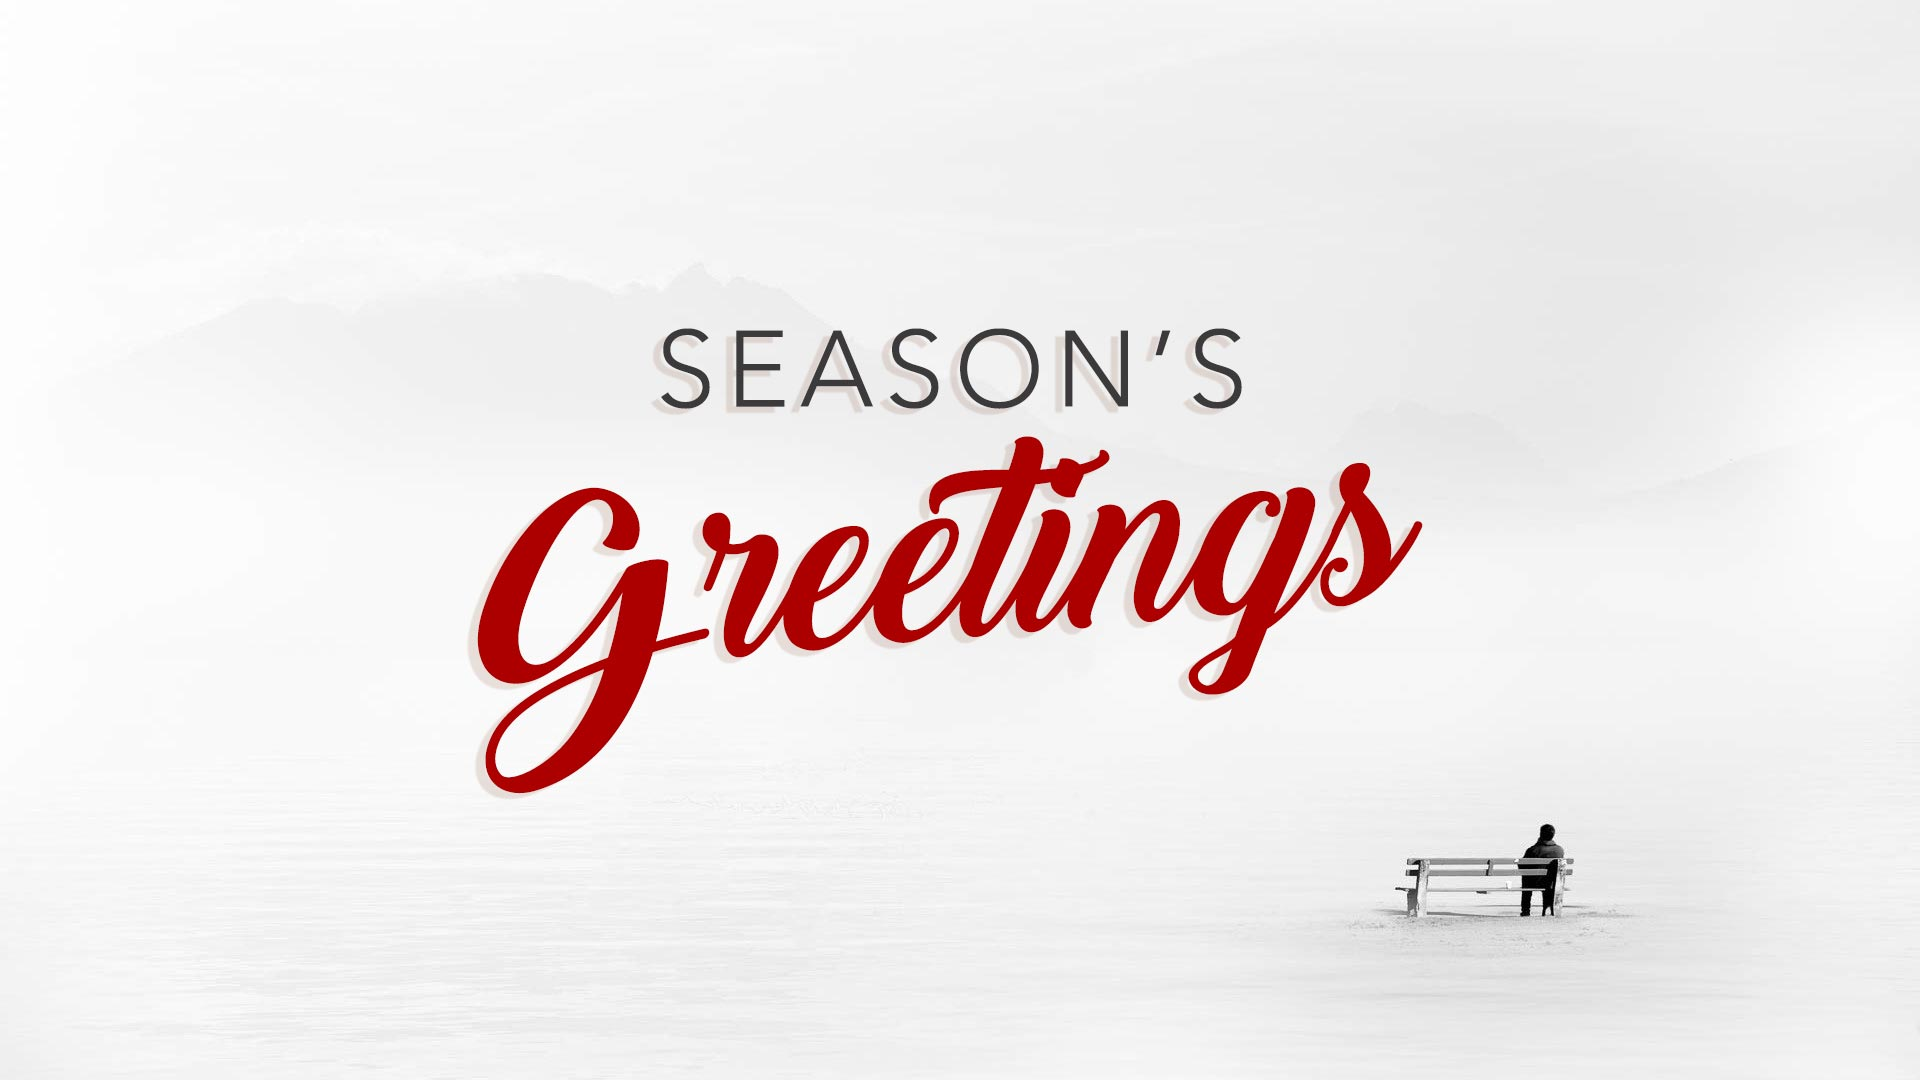 download 15 Seasons Greetings Cards Stock Images HD 1920x1080